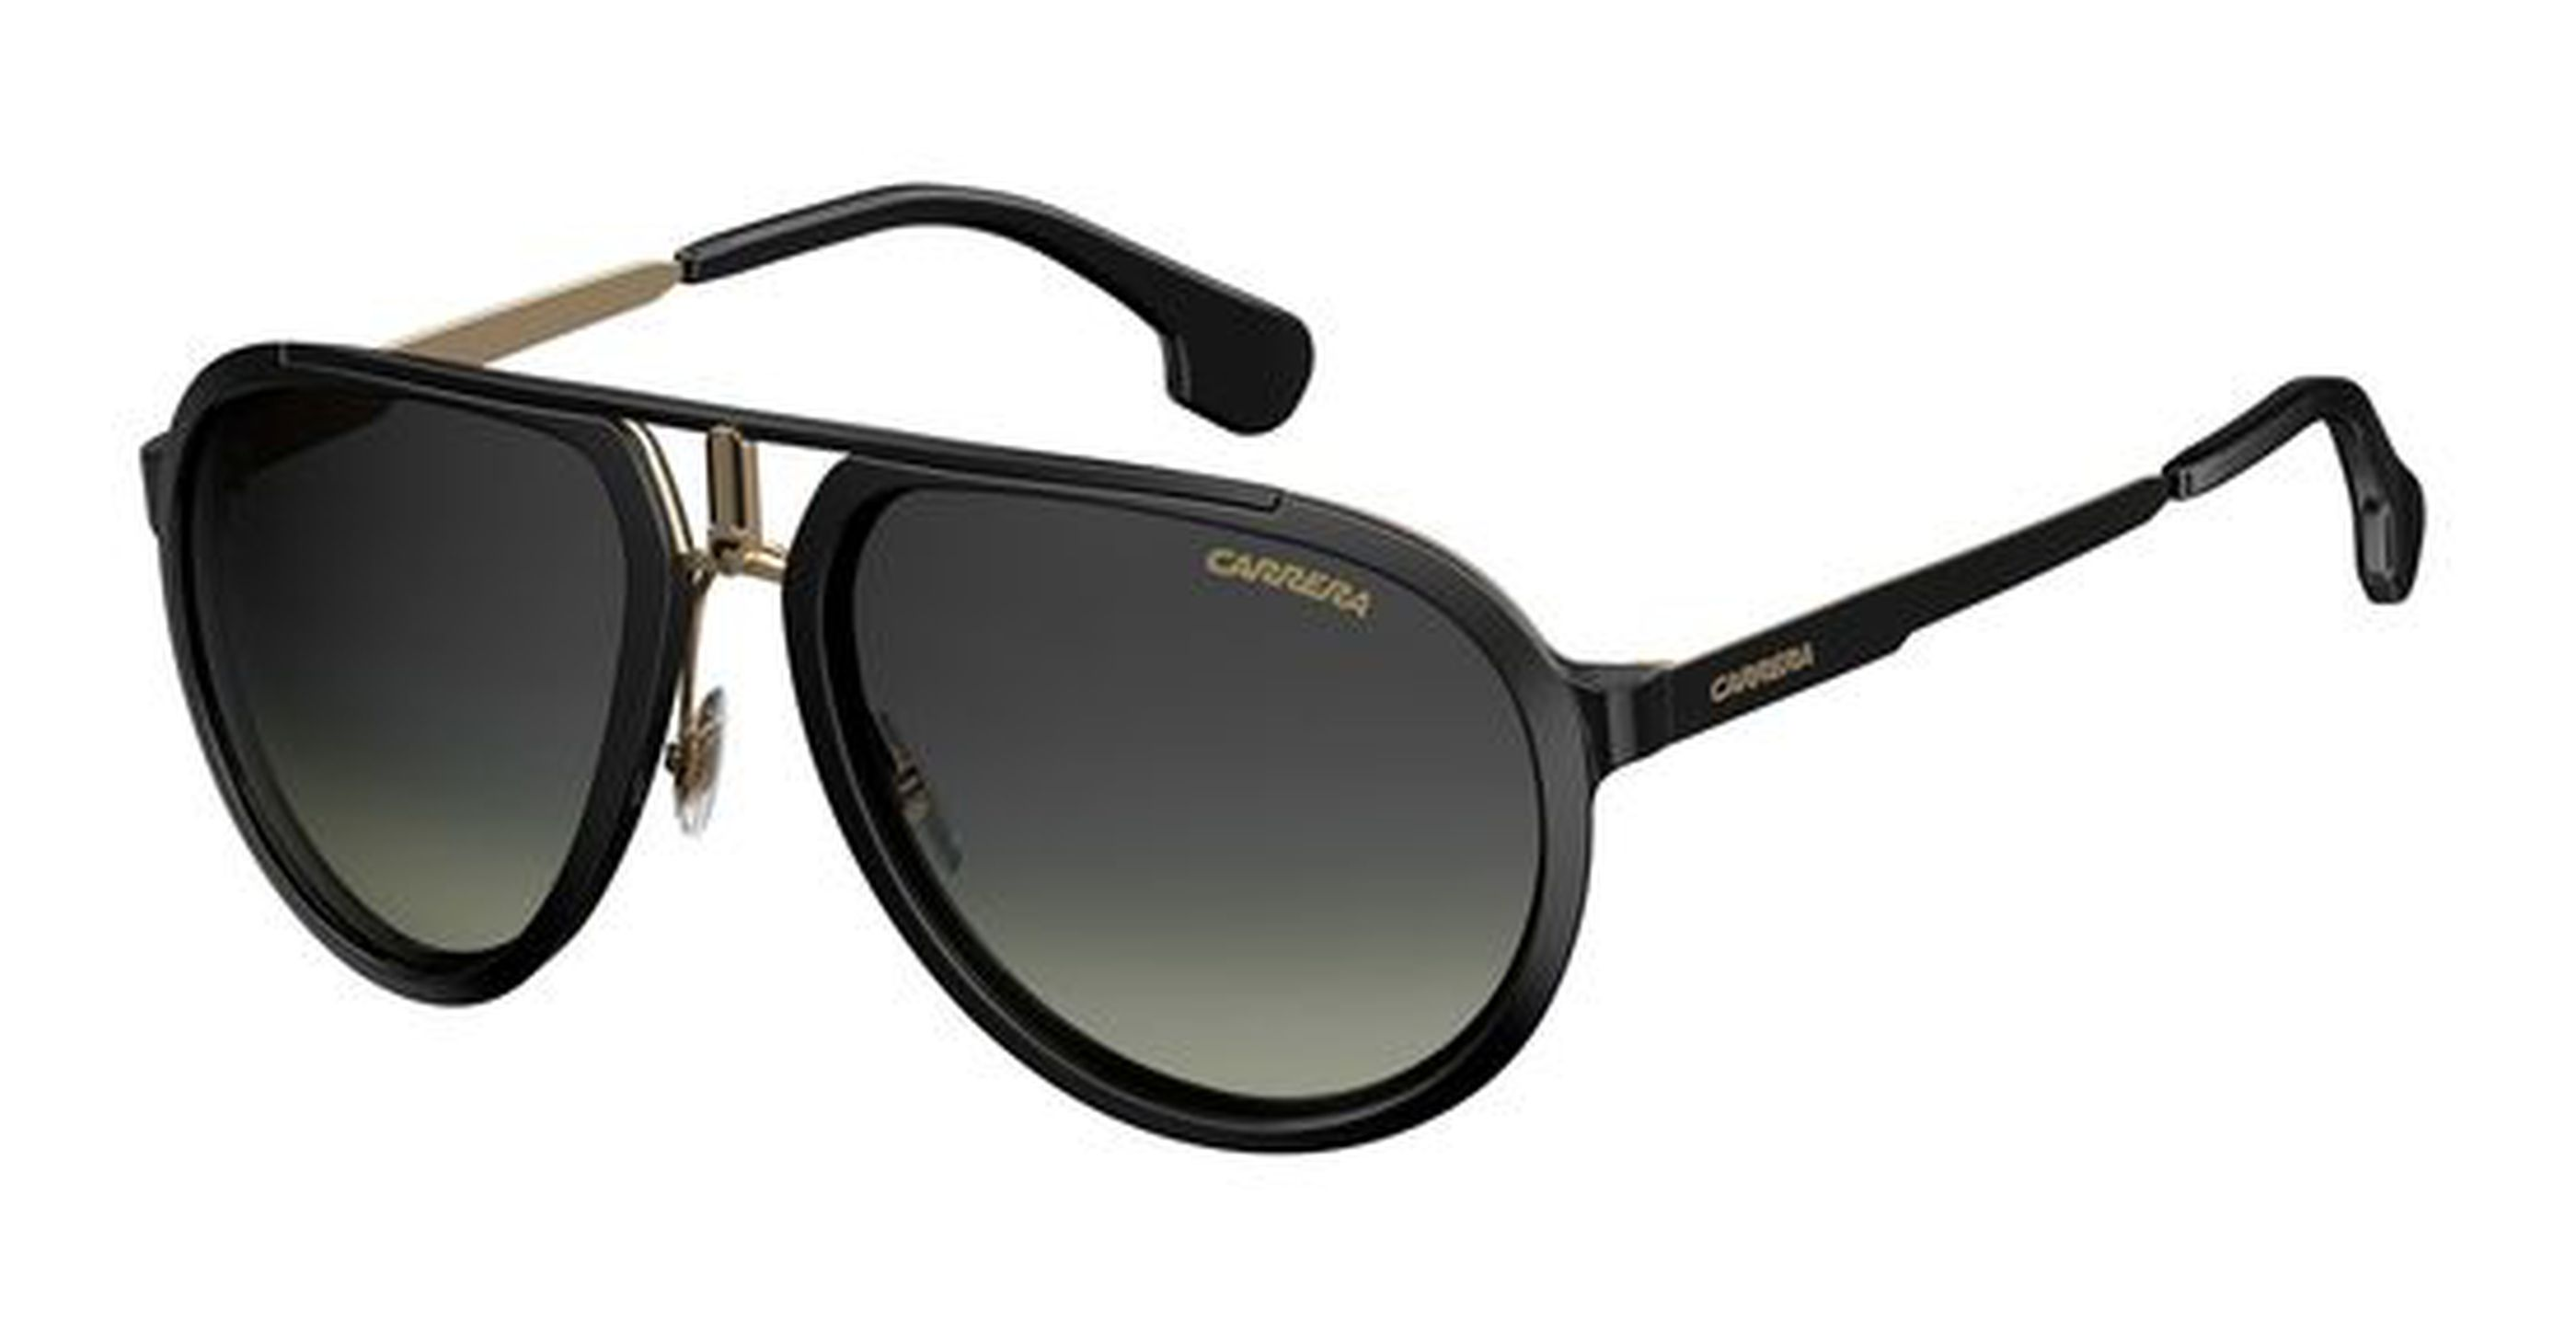 Carerra 1003 Aviator Sunglasses